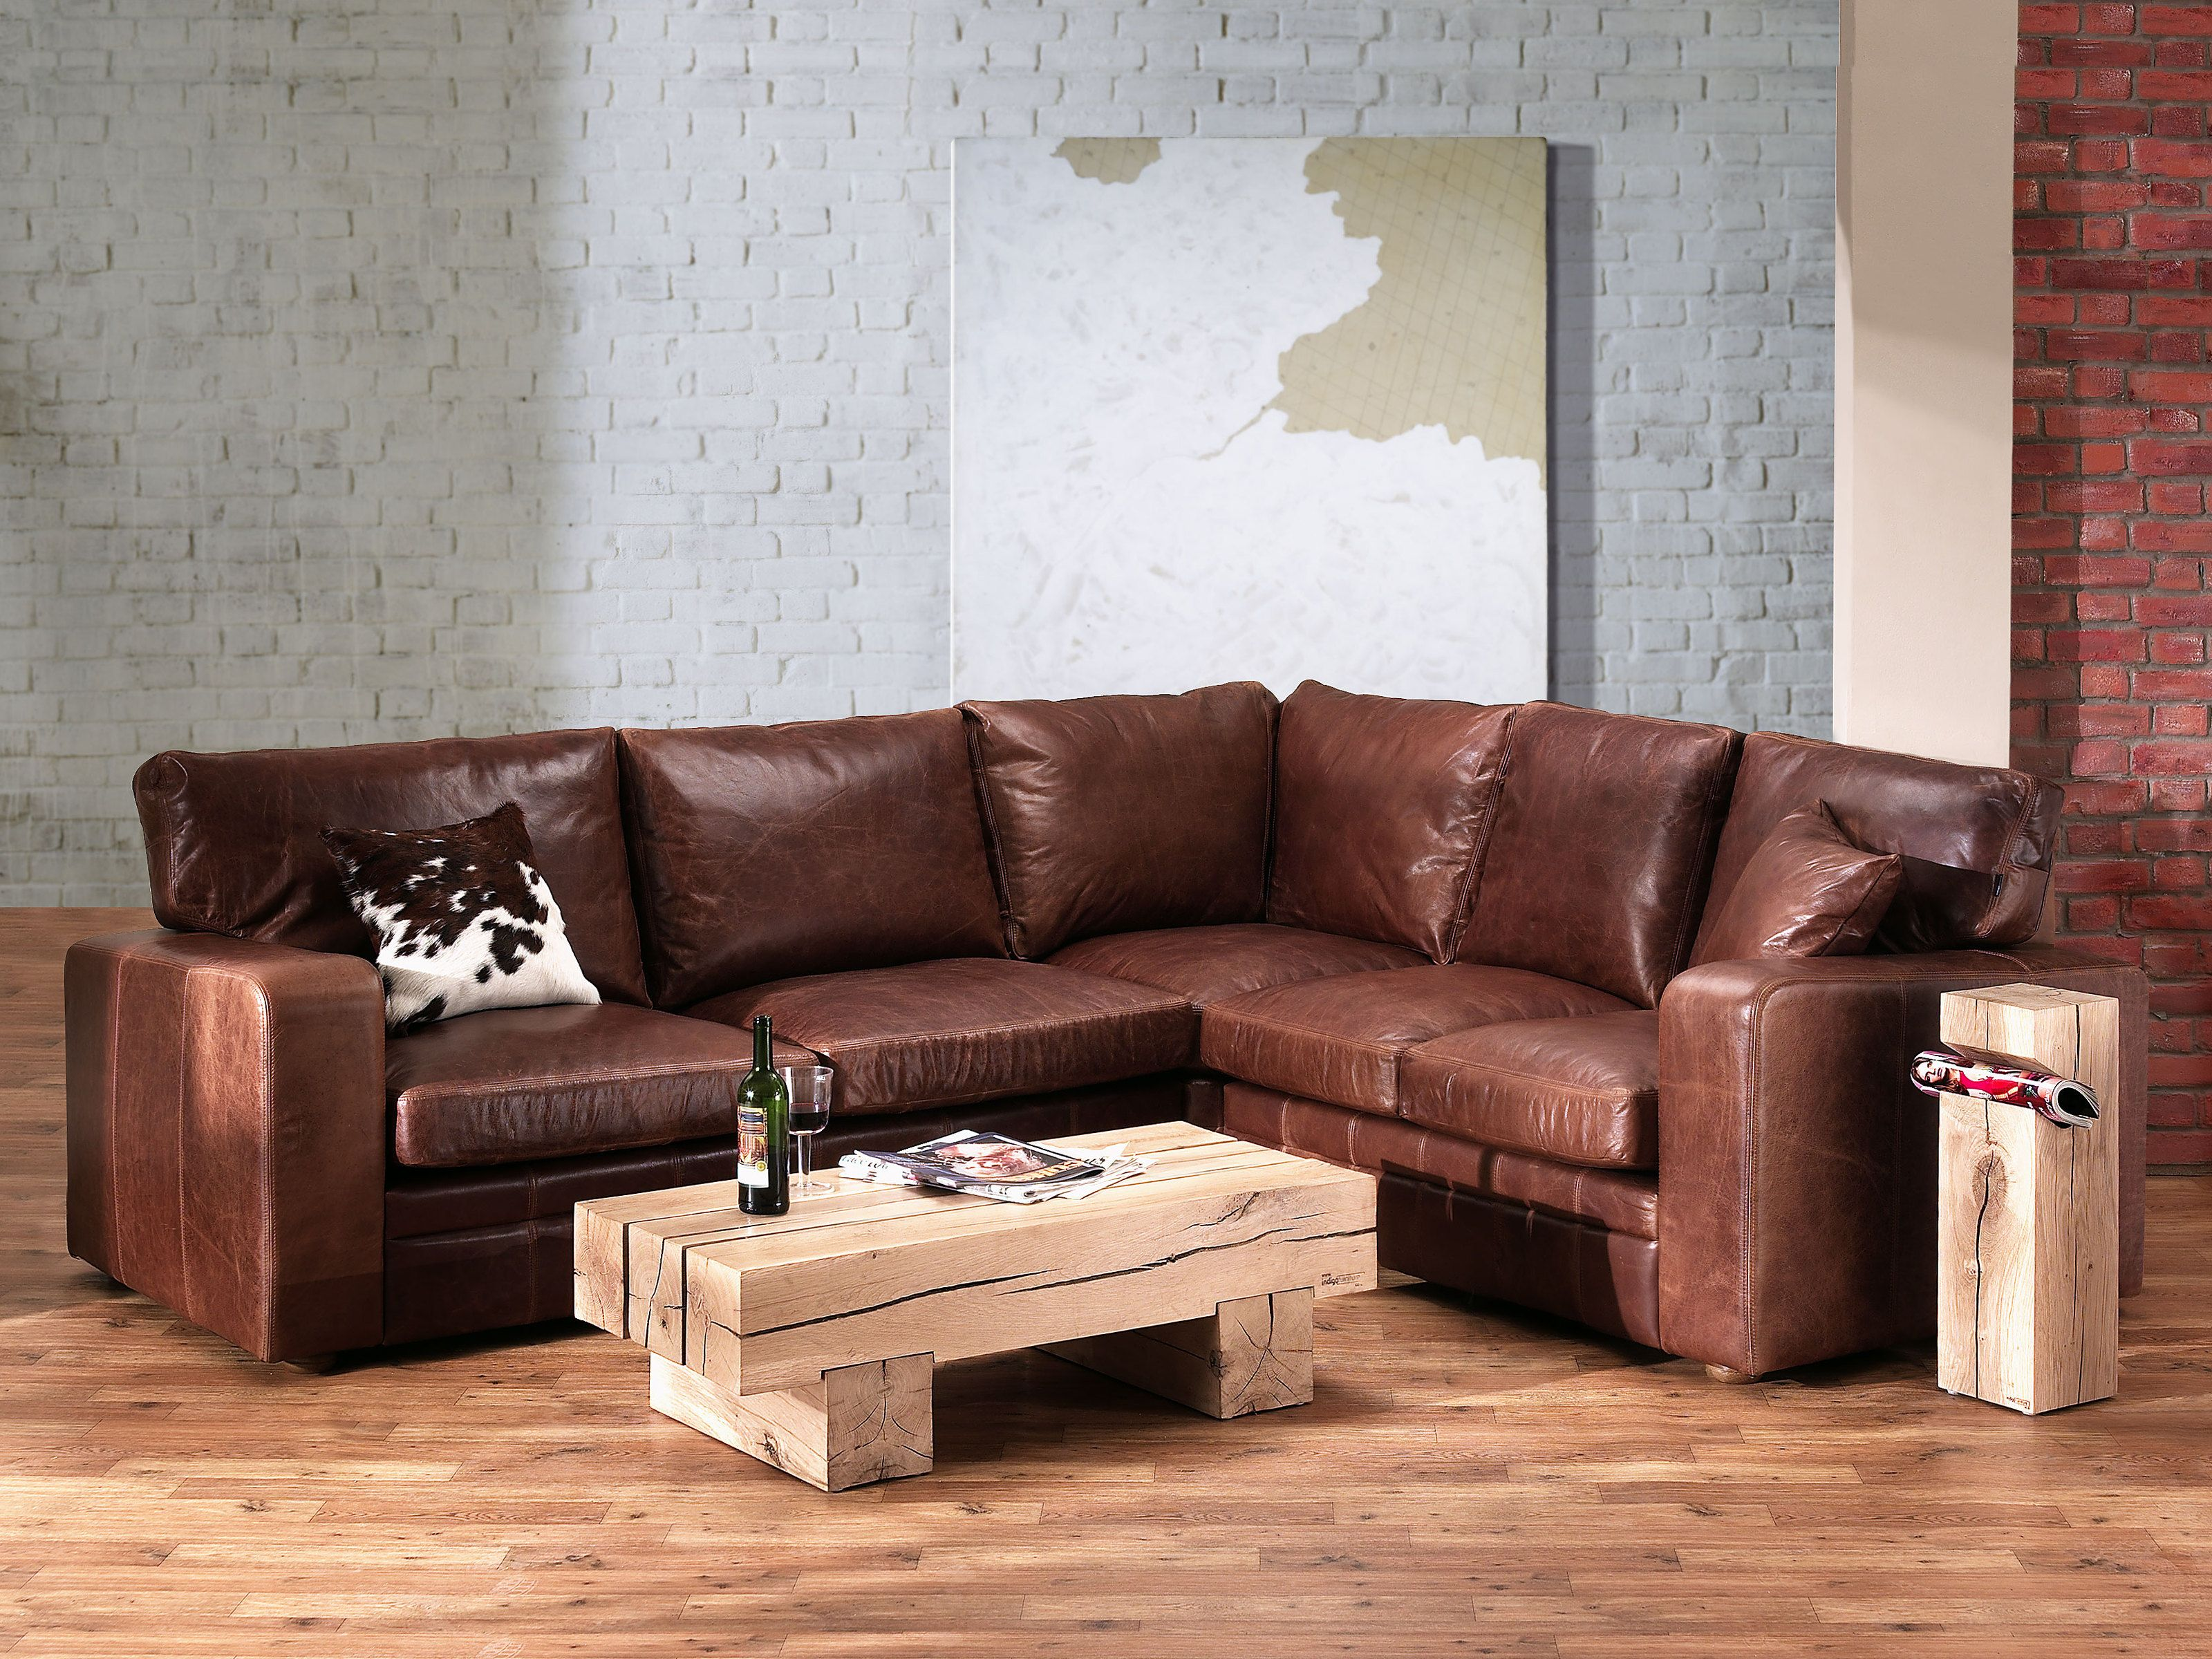 Vintage Square Leather Corner Sofa Leather Corner Sofa Corner Sofa Brown Leather Sofa Living Room